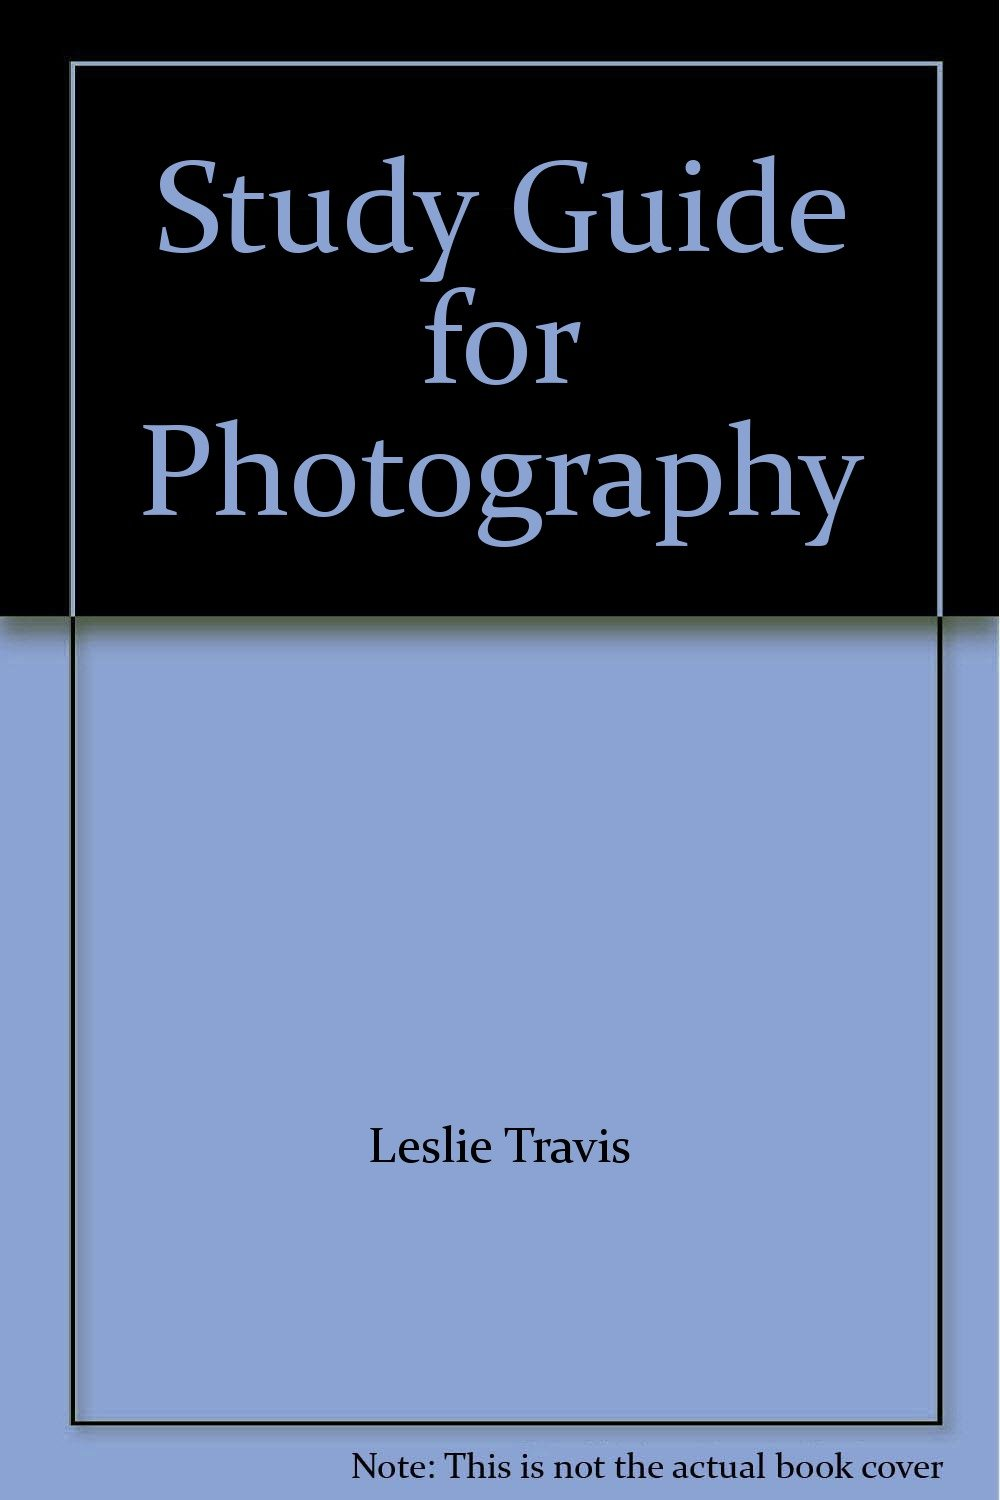 Study Guide for Photography